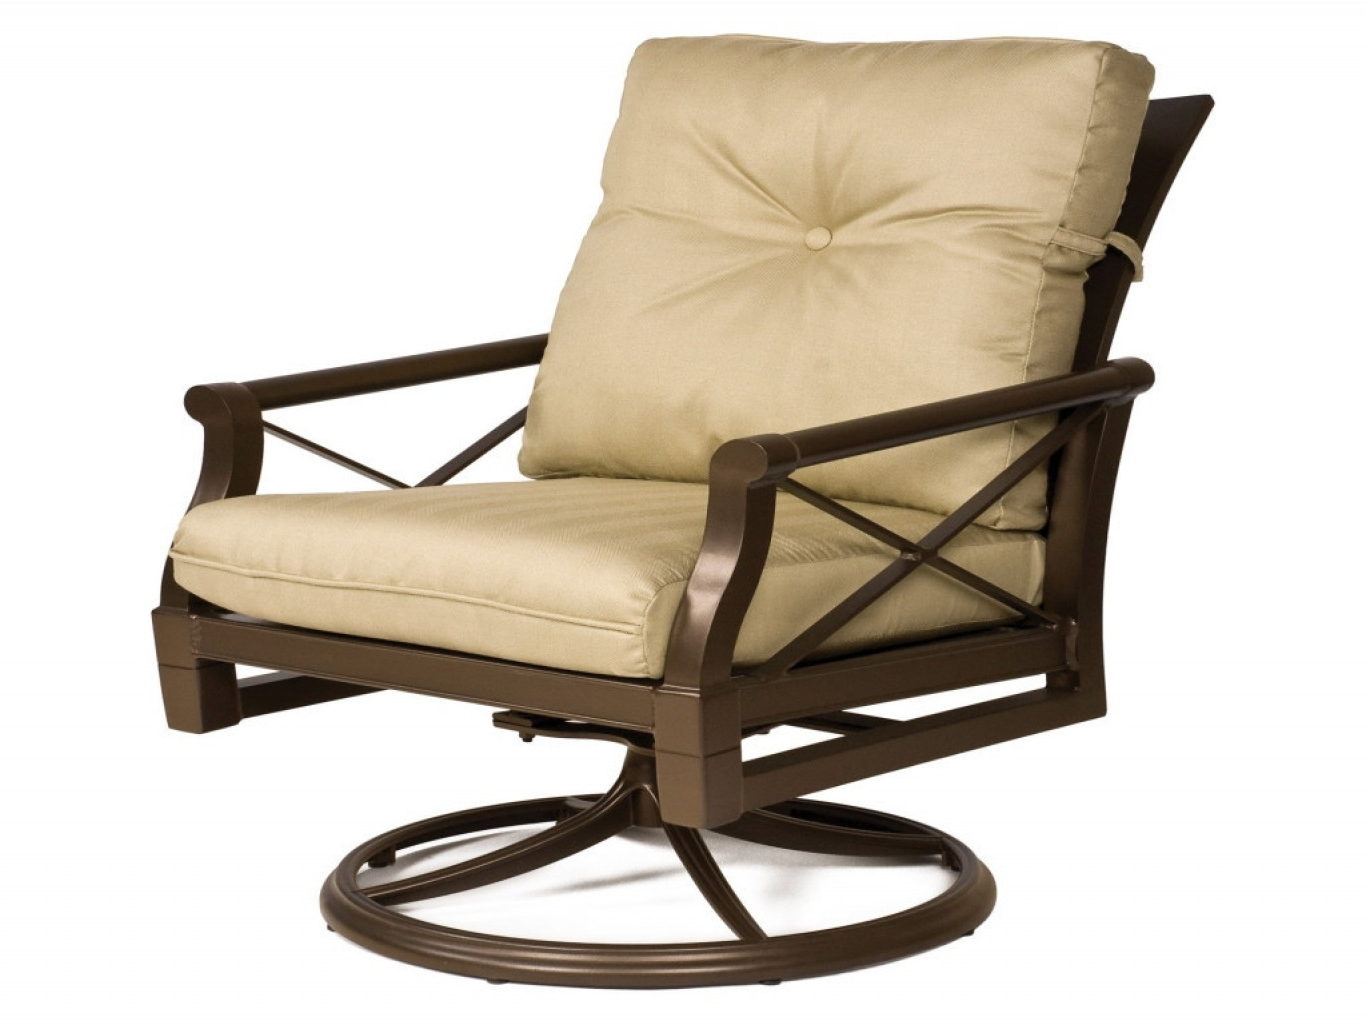 Overstock Outdoor Chaise Lounge Chairs With Regard To Most Popular Outdoor Chaise Lounge Chairs Ikea Transitional Swivel Chairs (View 12 of 15)